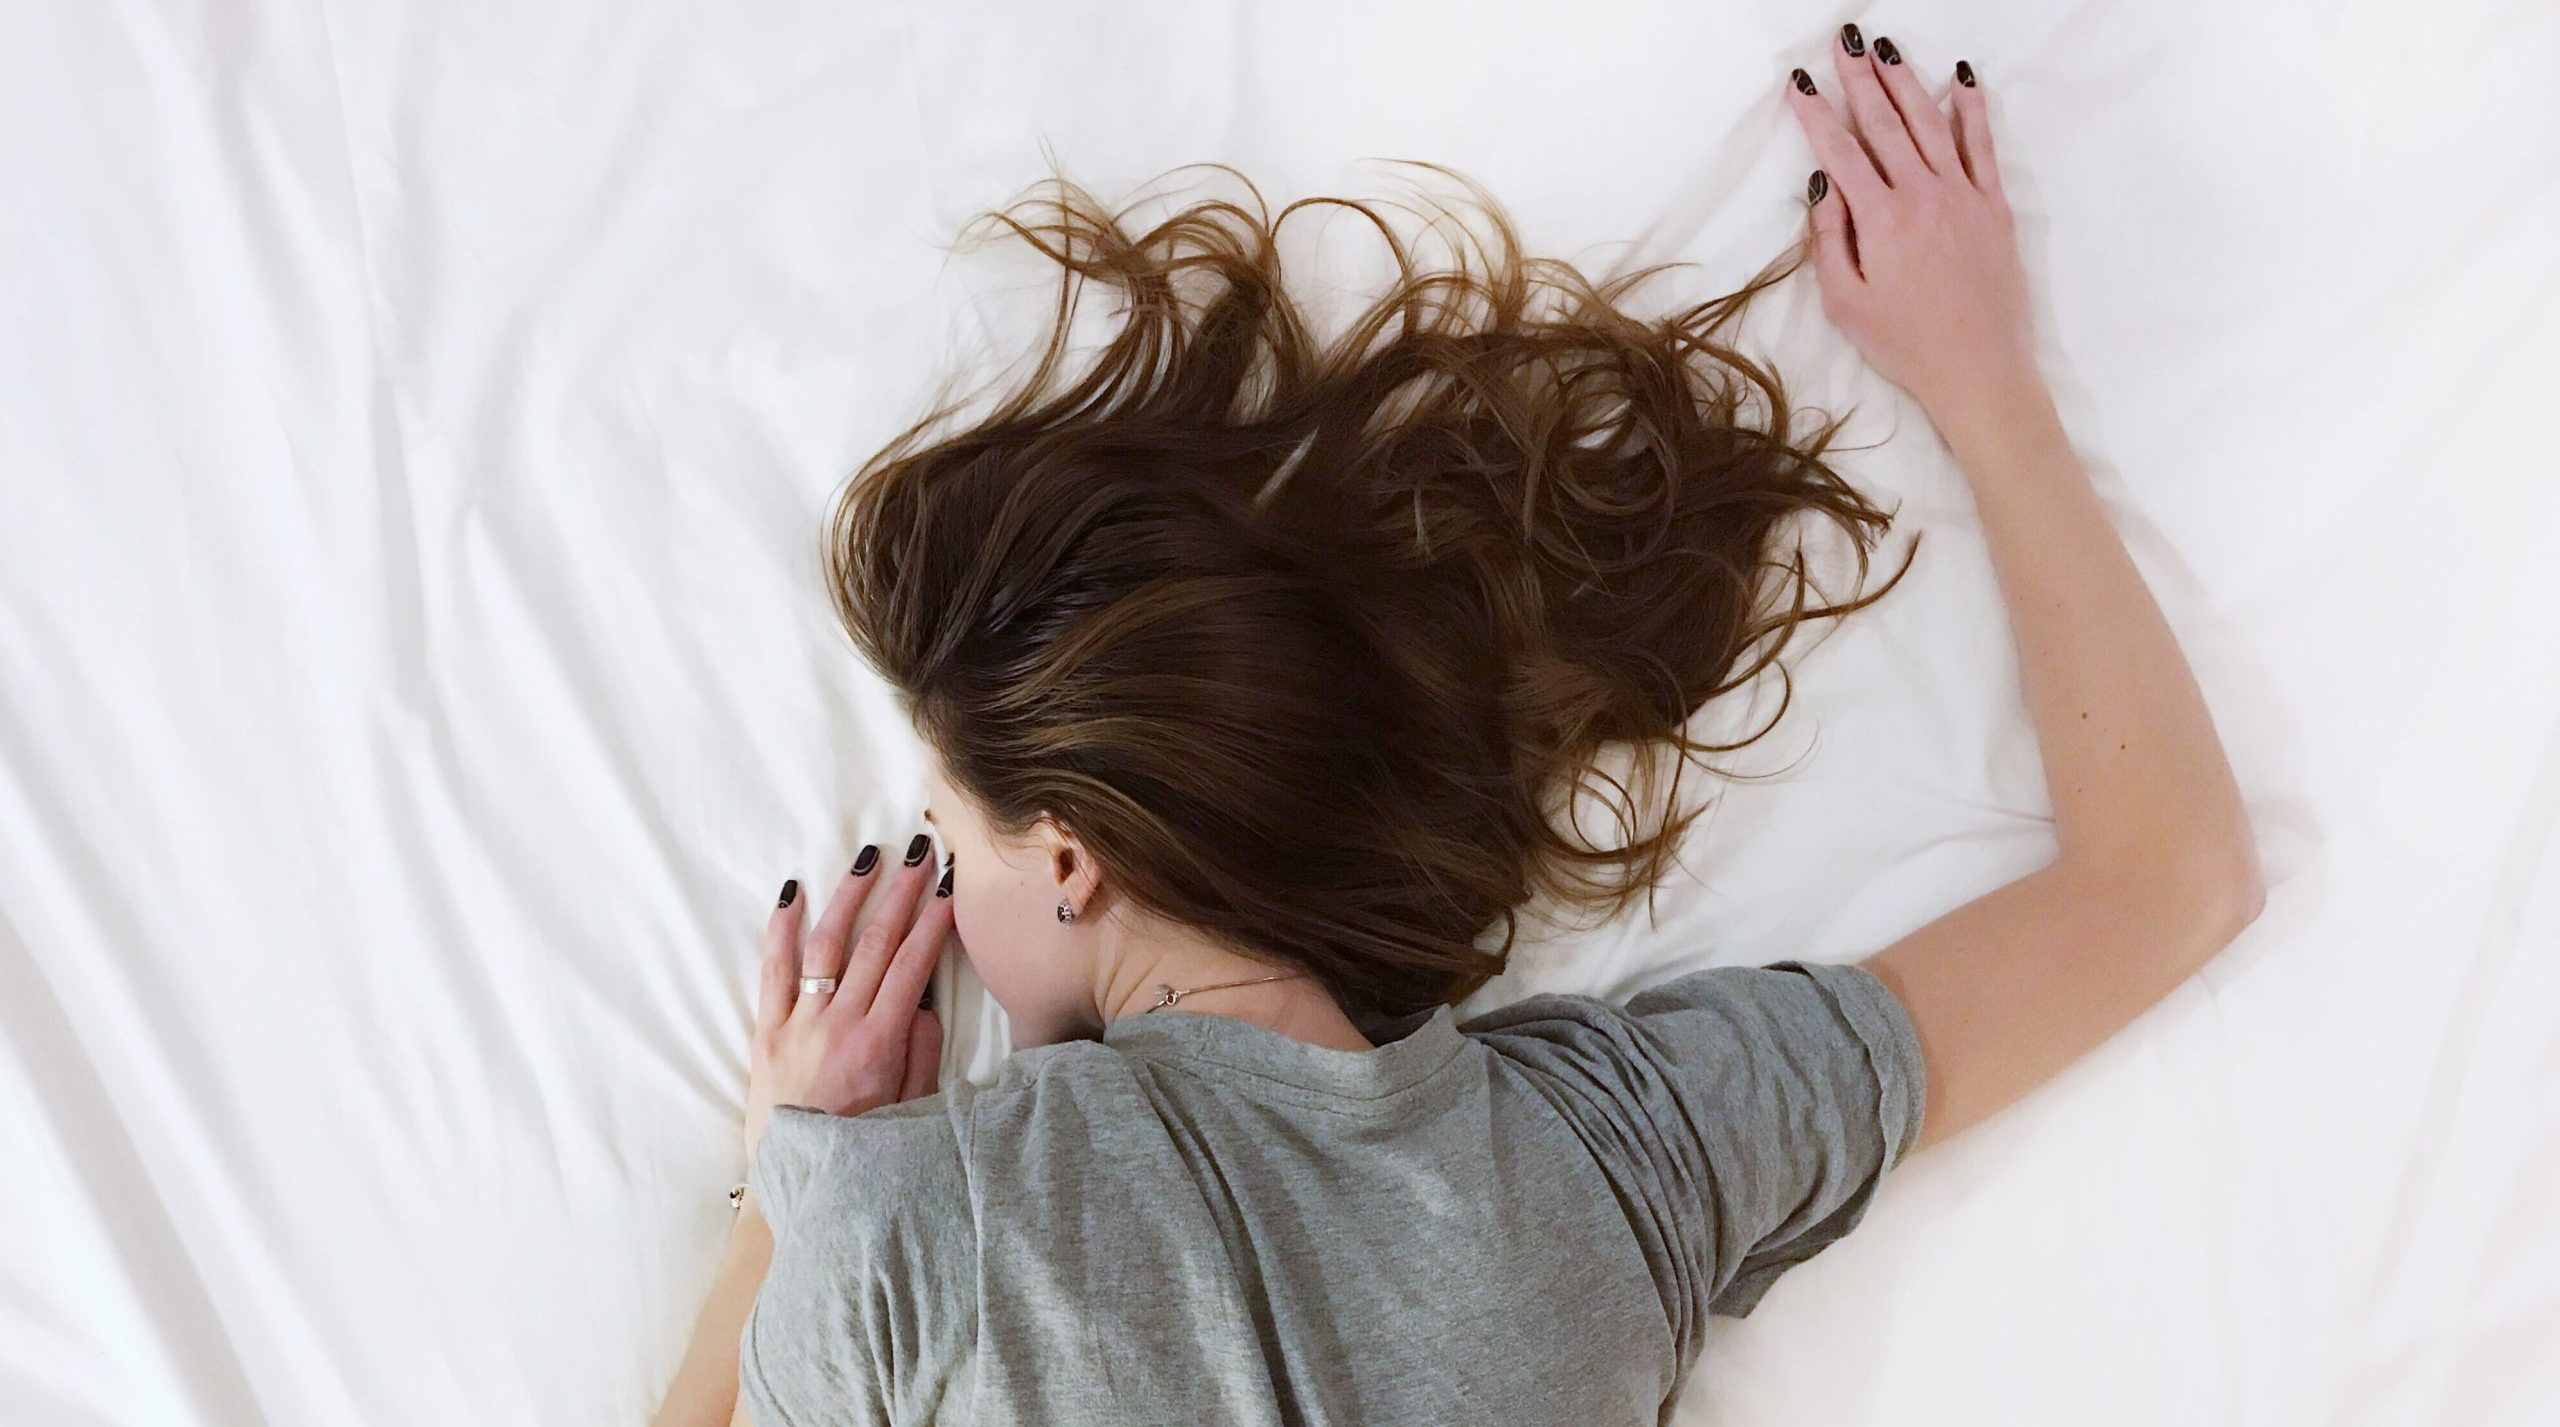 Why am I so tired in the morning? Sleep expert reveals possible causes during lockdown